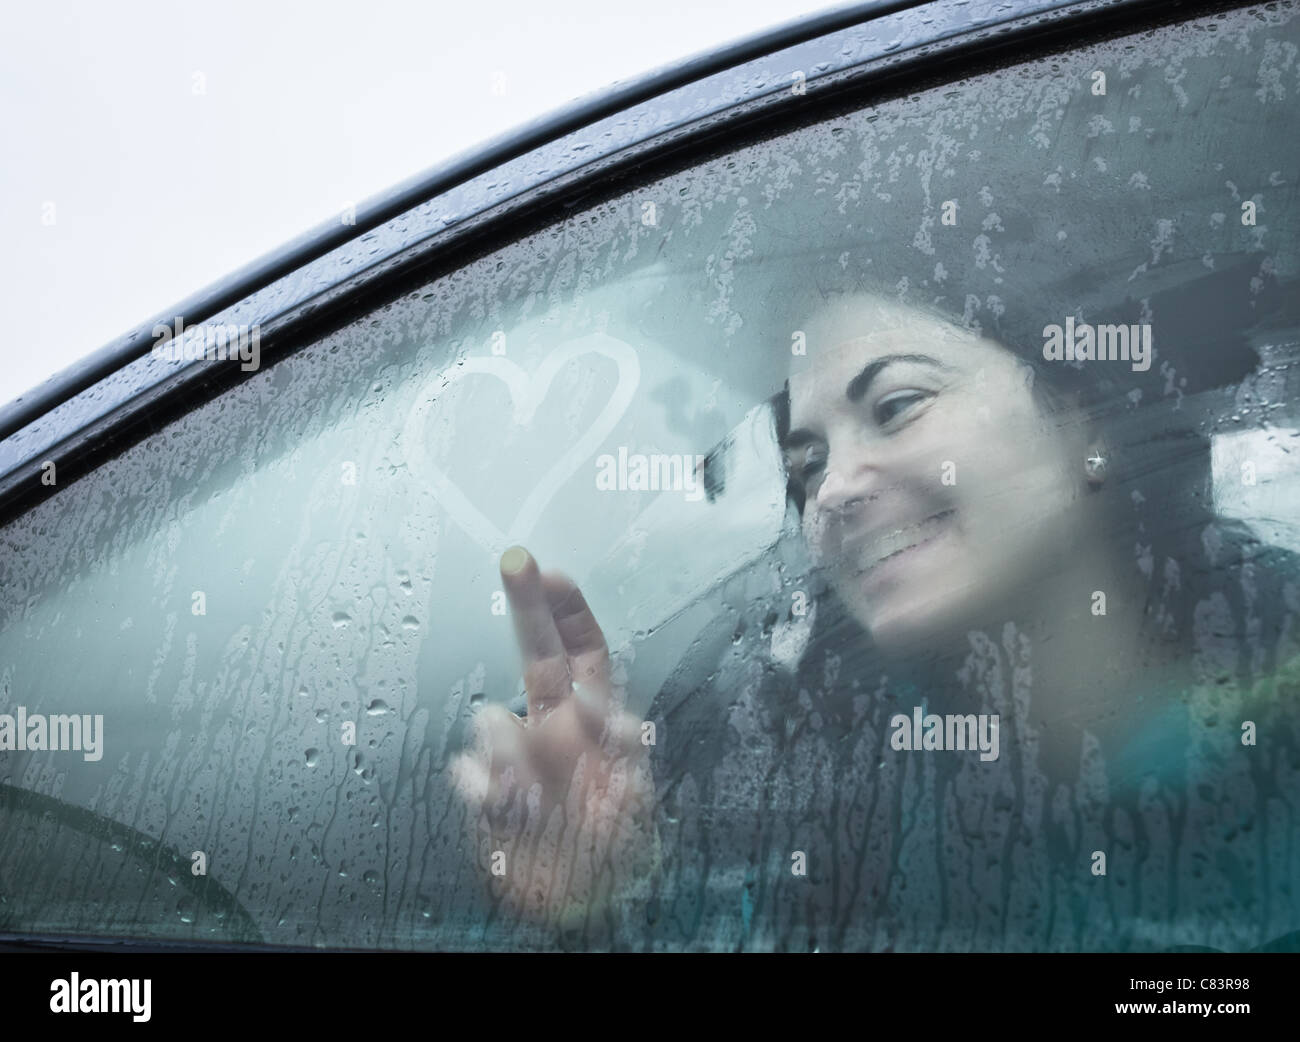 Dessin adolescente sur humide car window Photo Stock